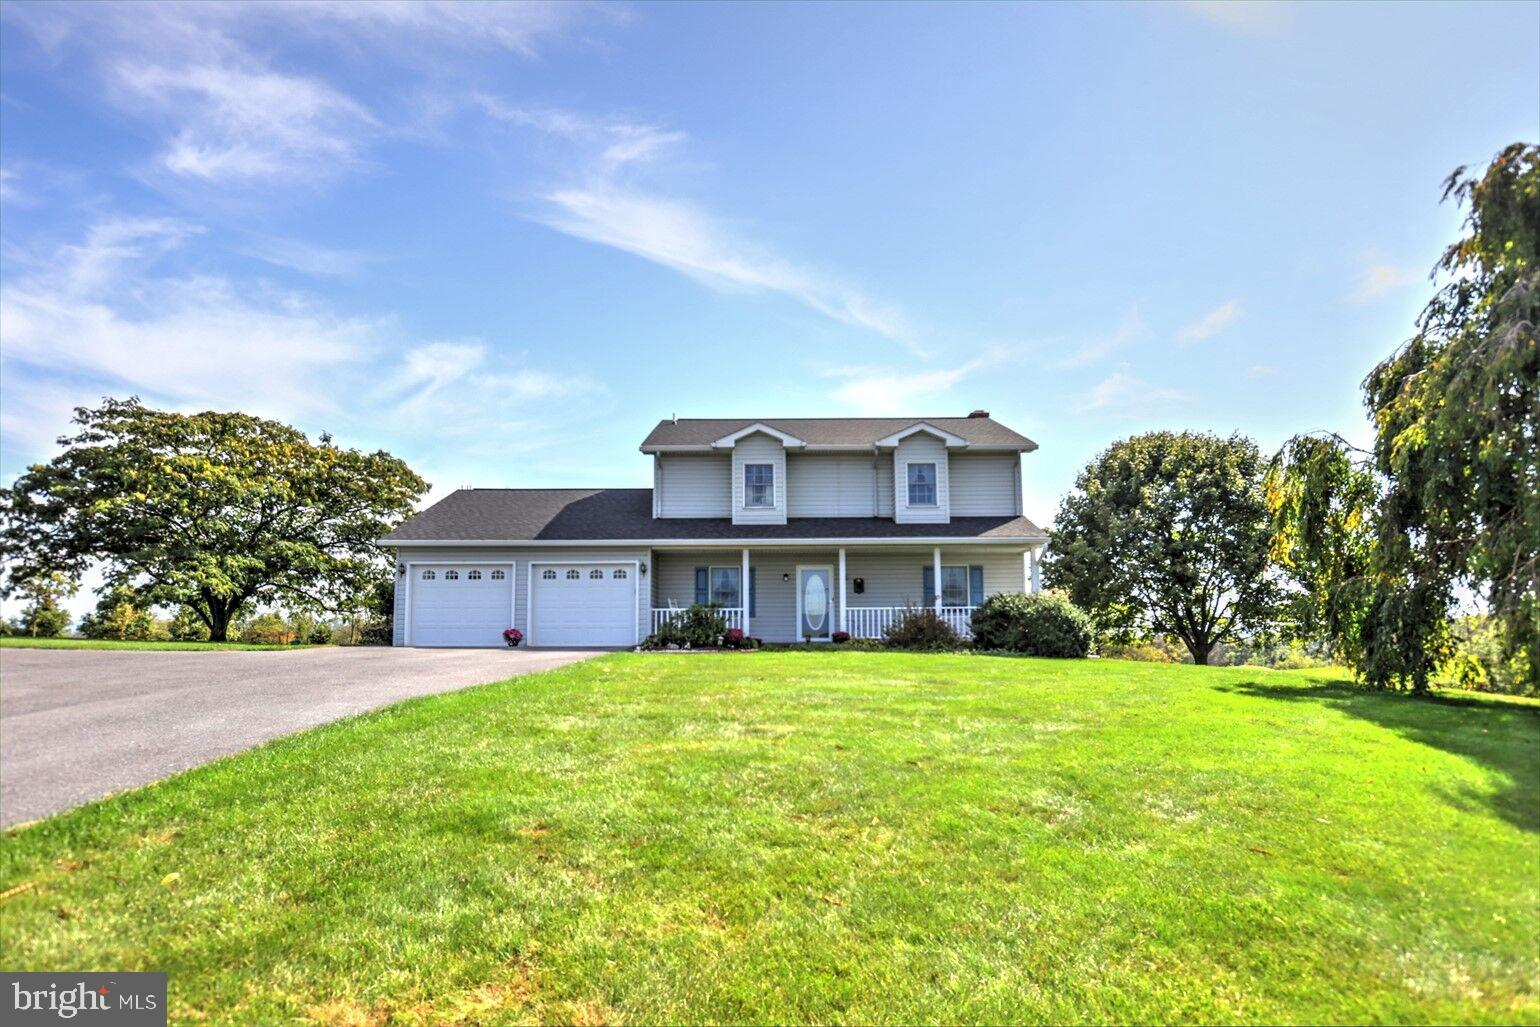 9173 SPORTING HILL ROAD, ORRSTOWN, PA 17244